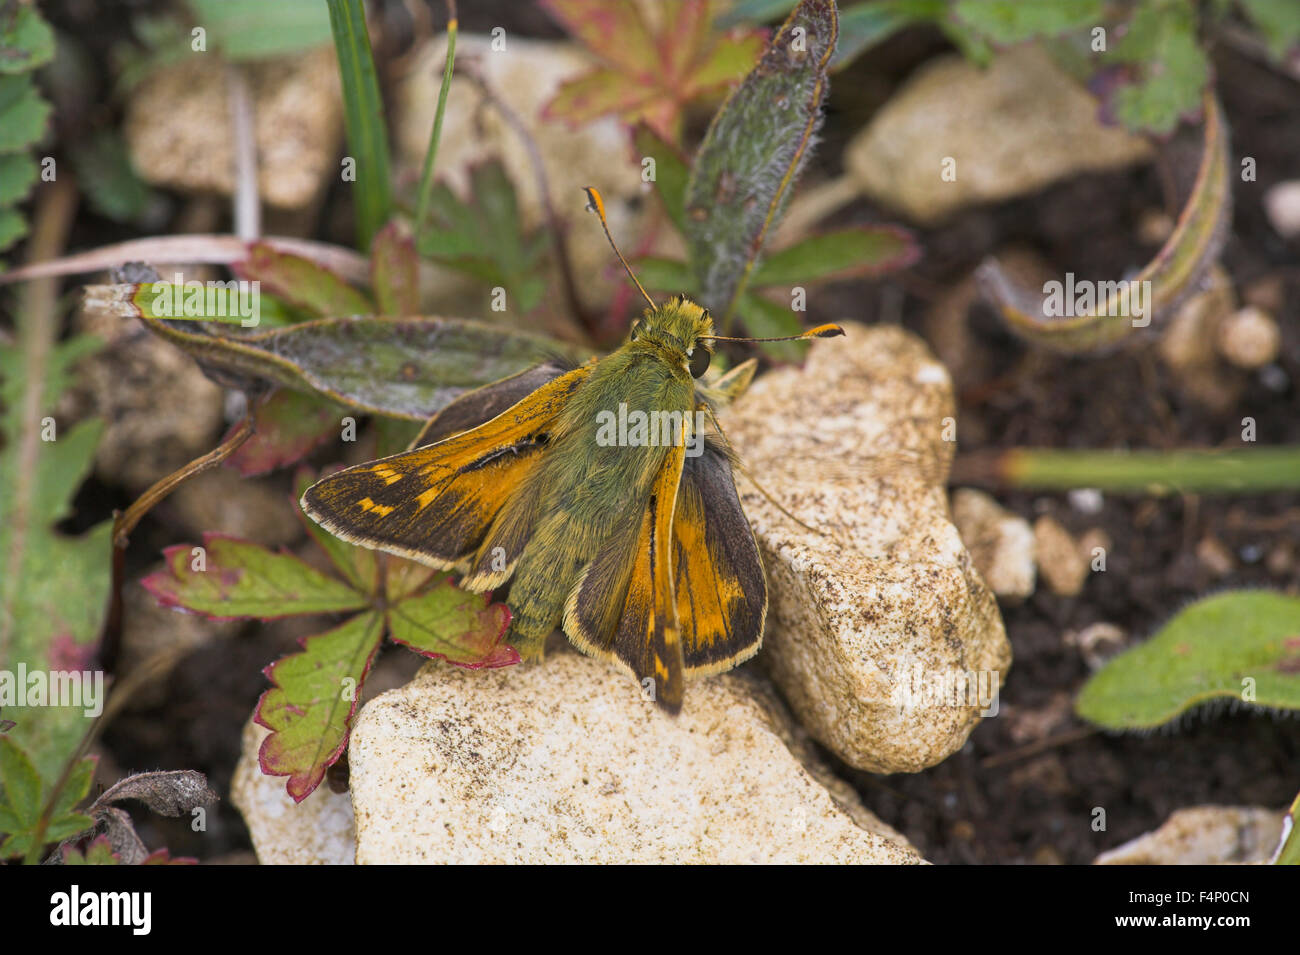 Silver-spotted skipper Hesperia comma, male imago, resting on ground, Aston Rowant, Oxfordshire, UK in August. Stock Photo